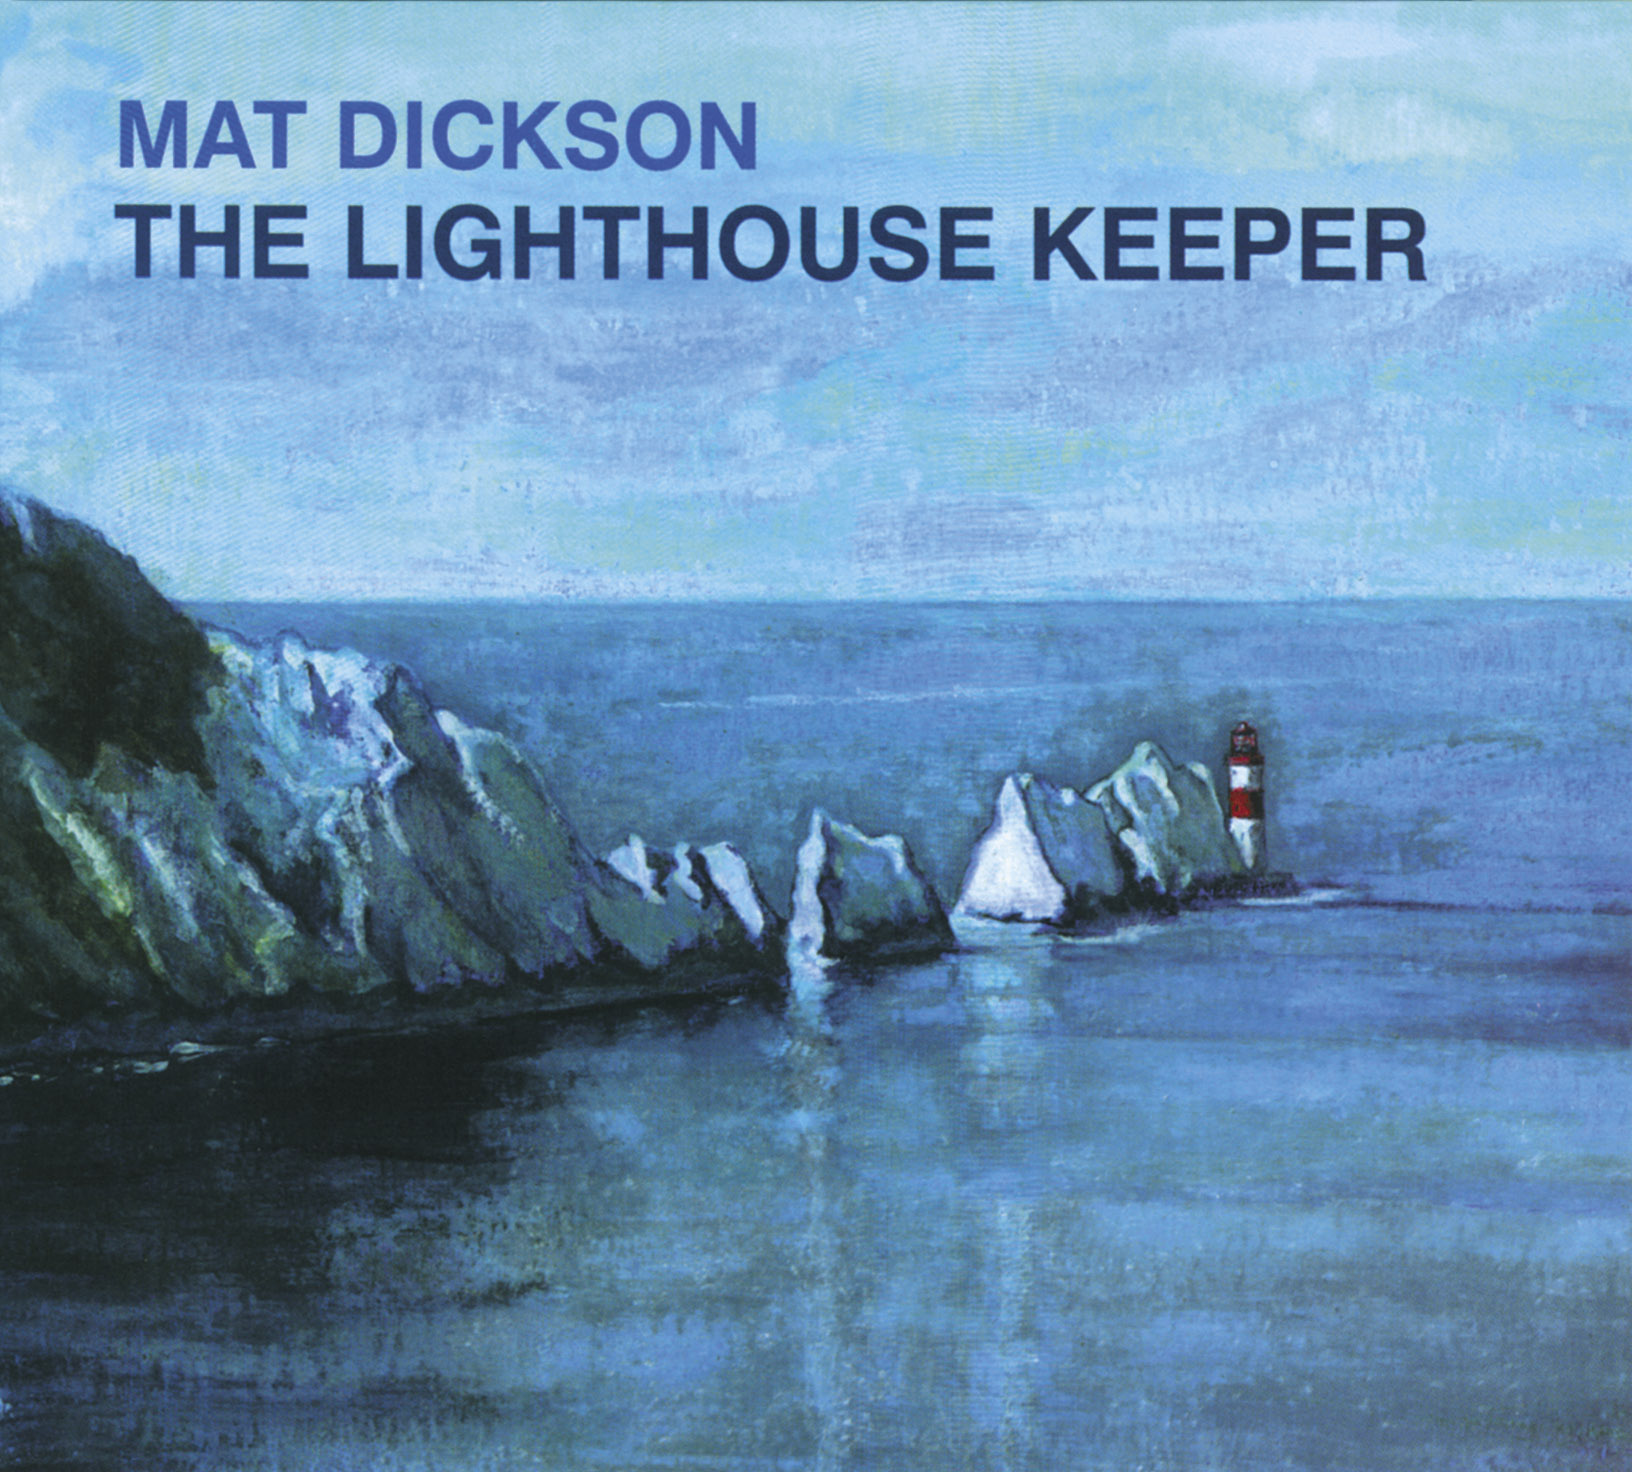 The Lighthouse Keeper Cover - Hires